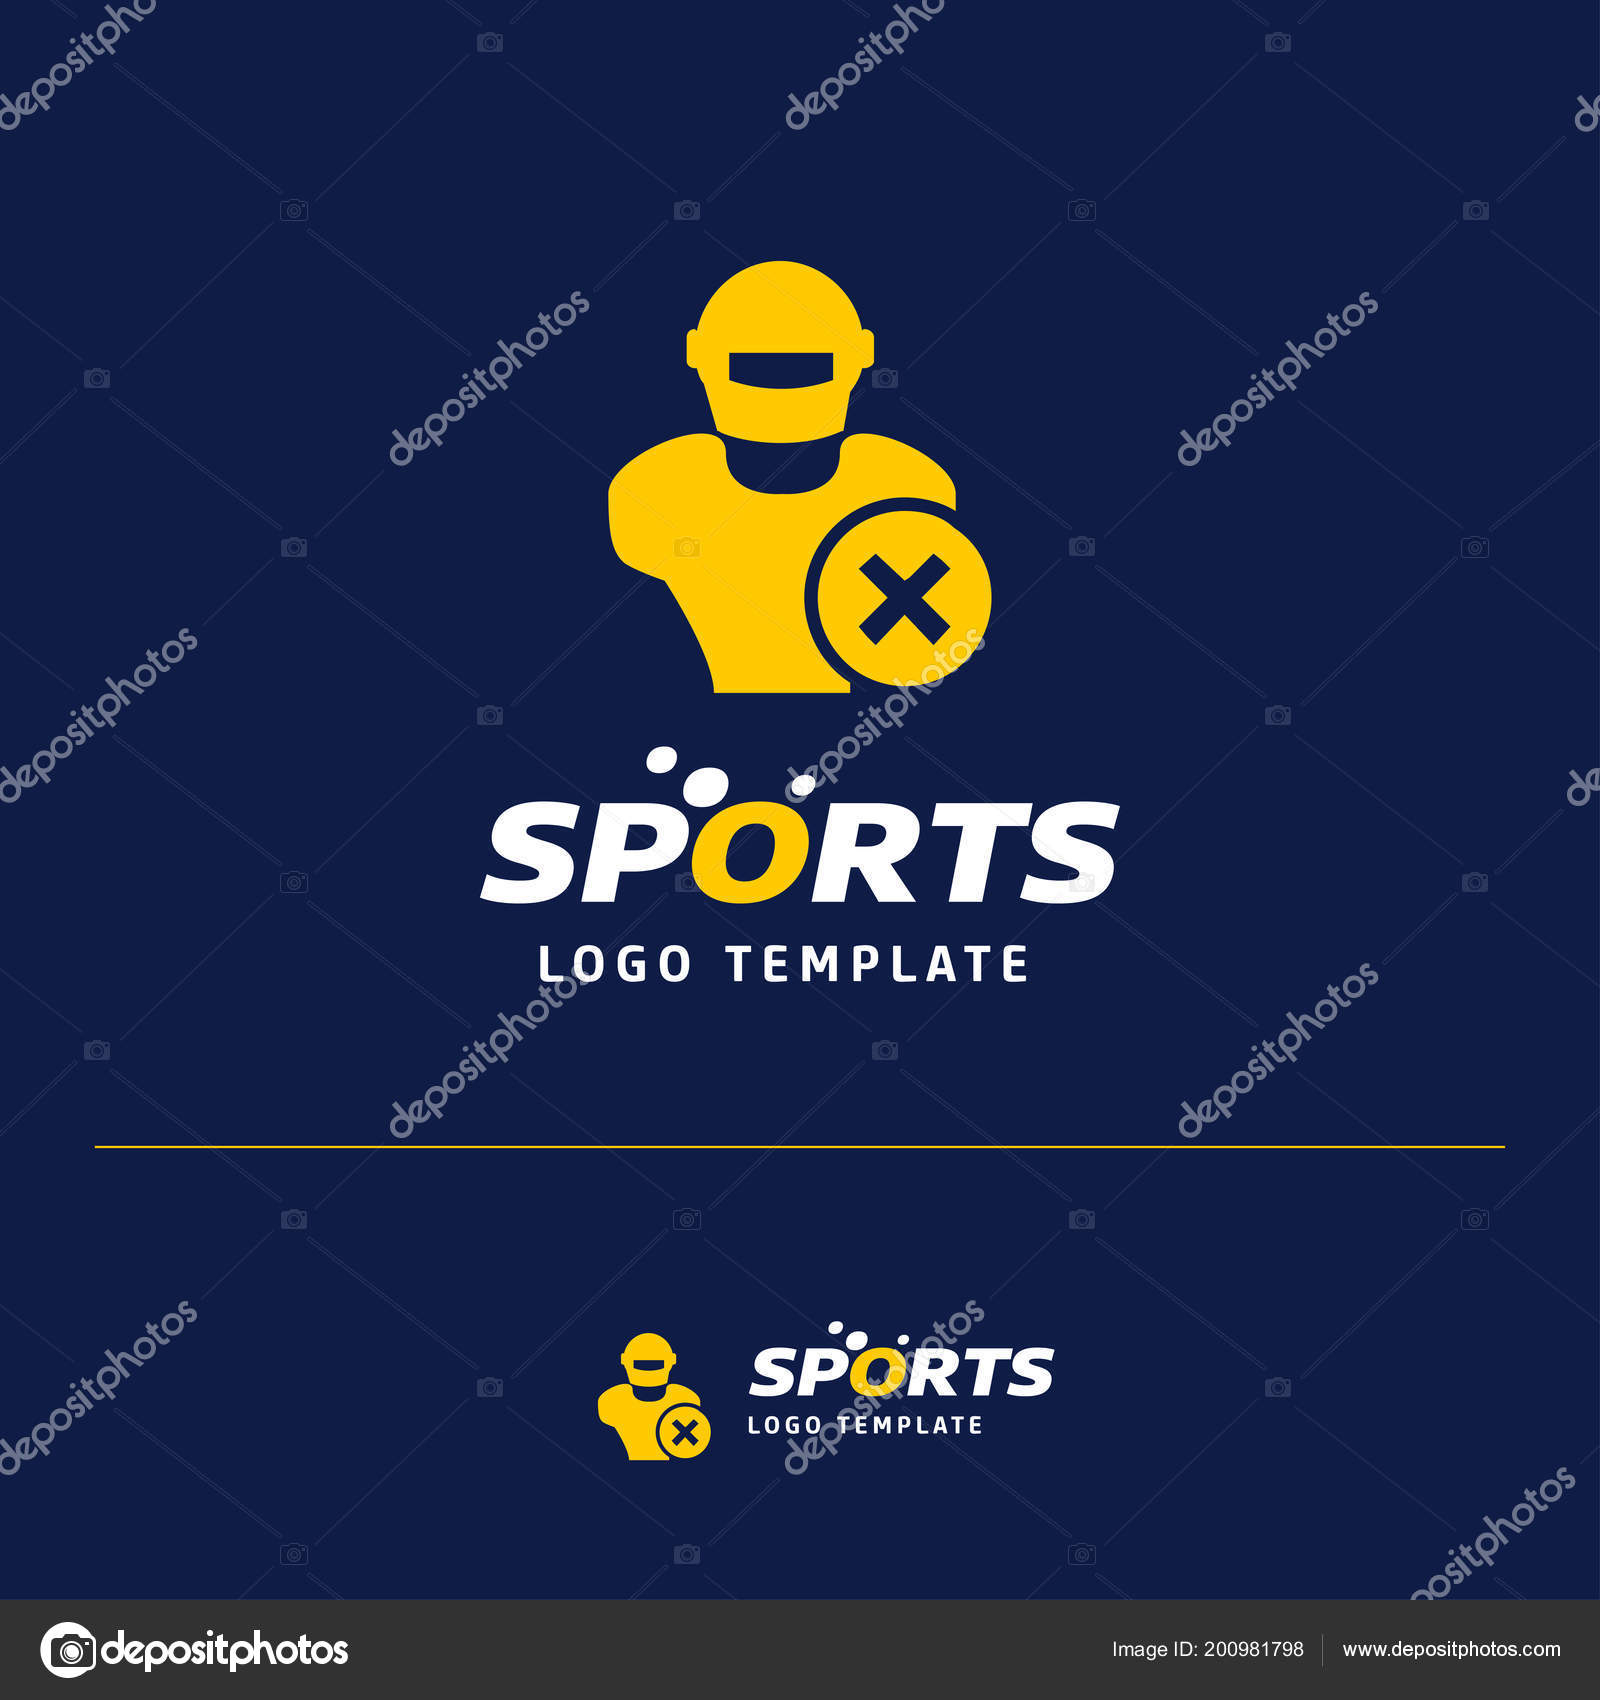 Vector illustration business card design sports logo theme vetores vector illustration business card design sports logo theme vetores de stock reheart Gallery